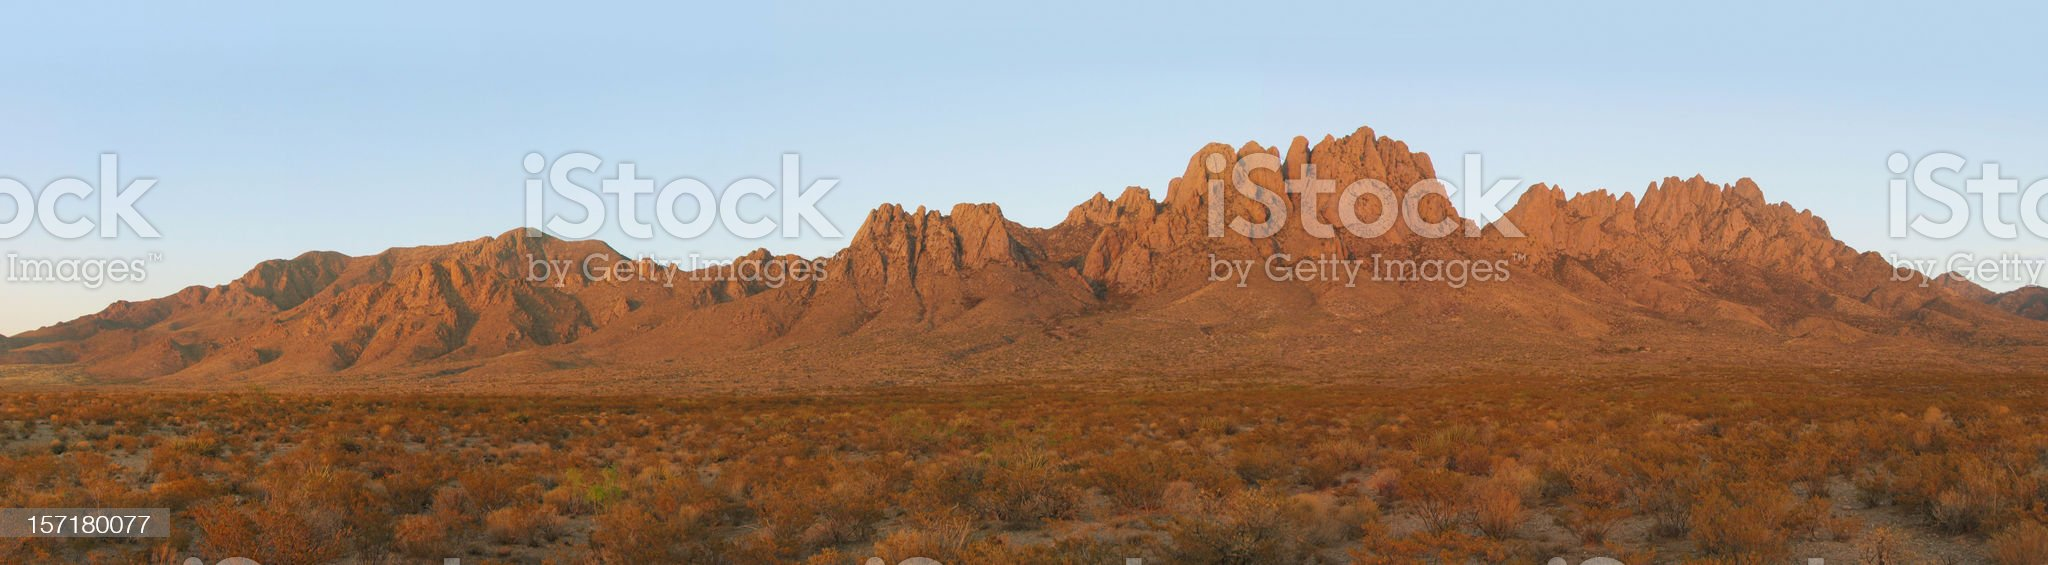 Organ Mountains, Las Cruces, NM royalty-free stock photo